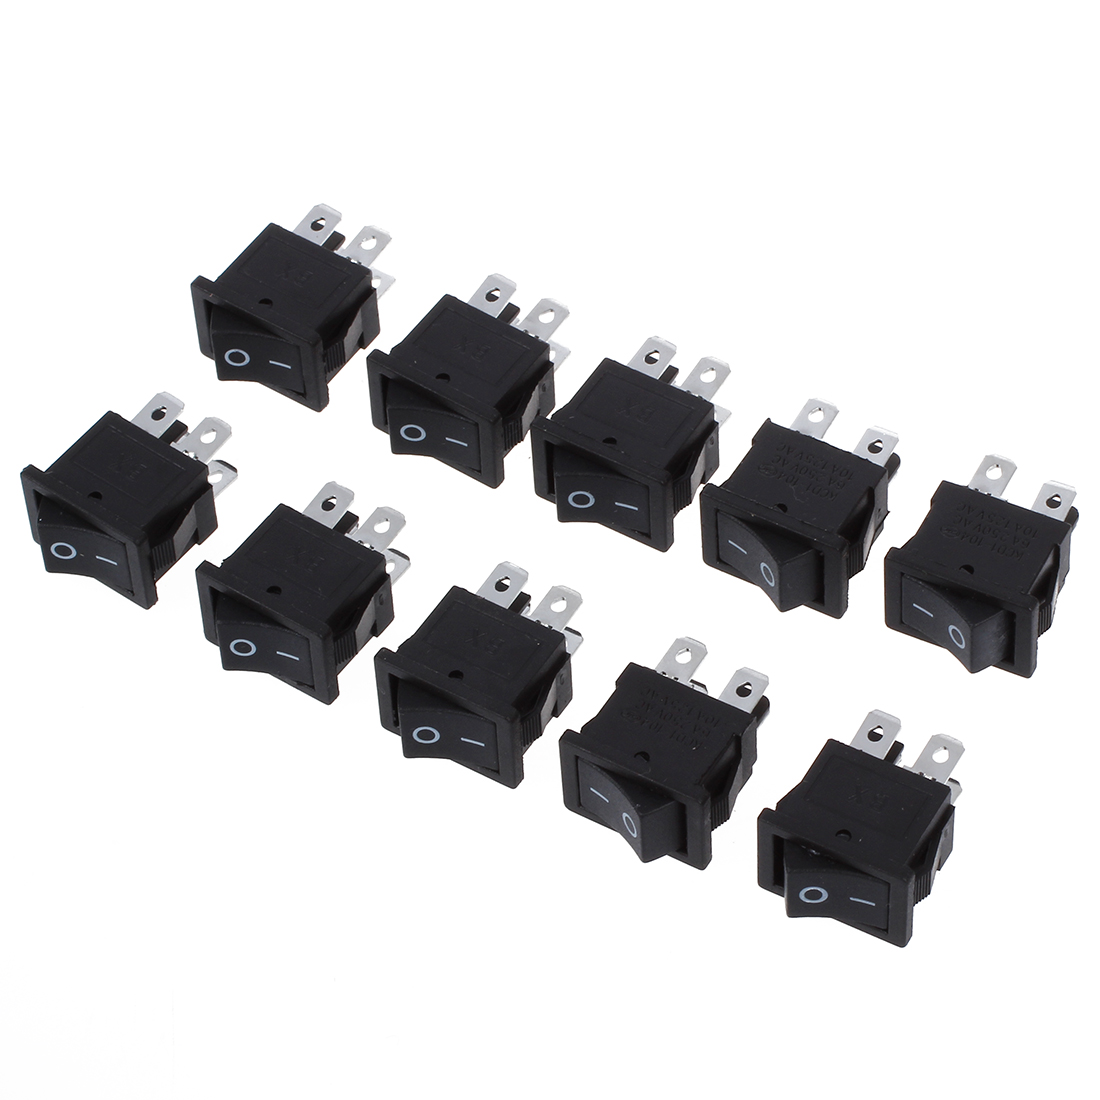 10 Pcs x 4 Pin On-Off 2 Position DPST Boat Rocker Switches 10A/125V 6A/250V AC 5 pcs promotion green light 4 pin dpst on off snap in boat rocker switch 16a 250v 15a 125v ac